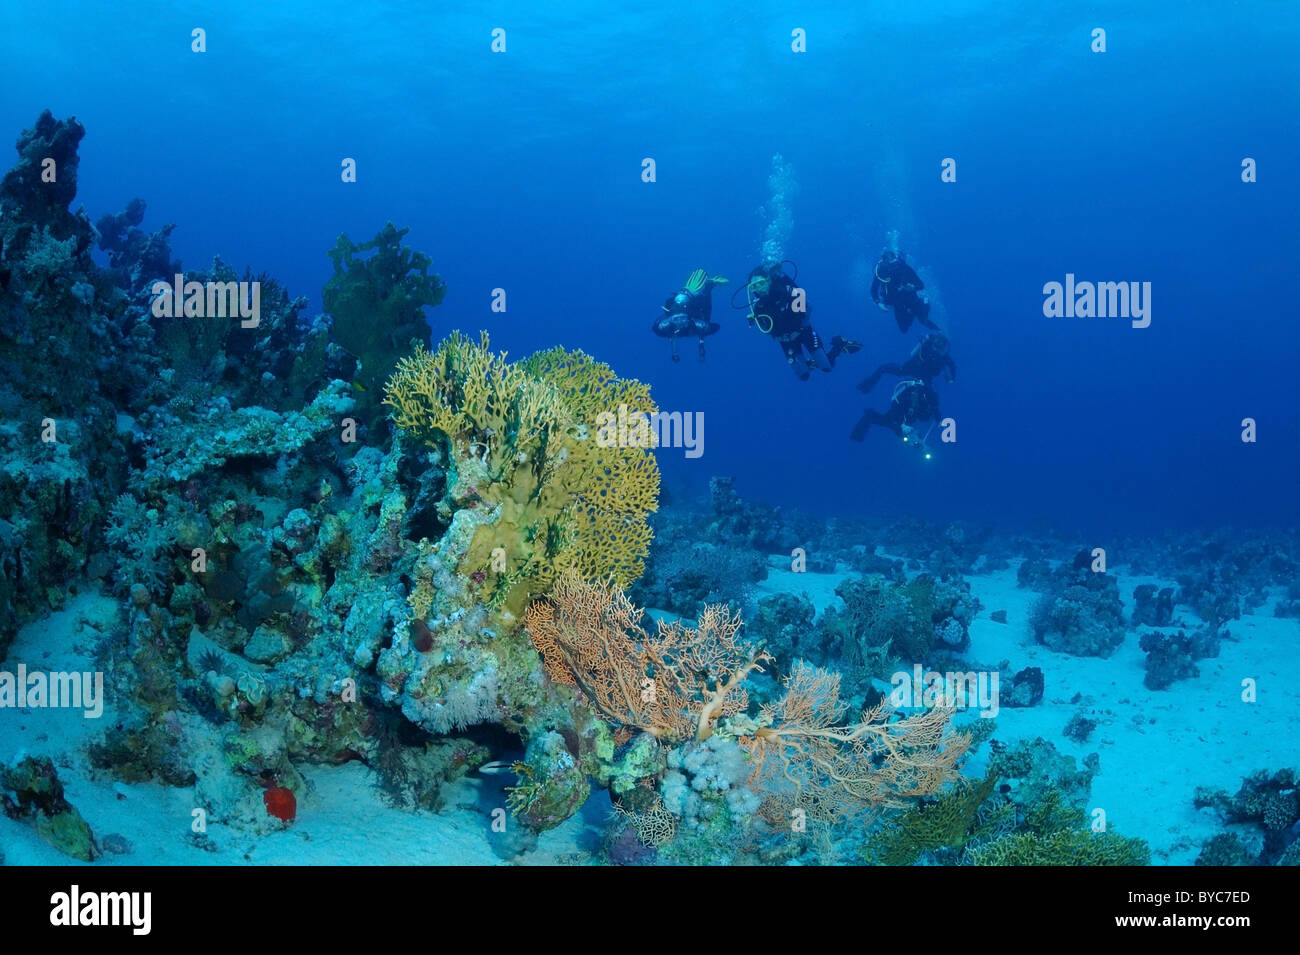 Group of scubadivers swim near coral reef Stock Photo